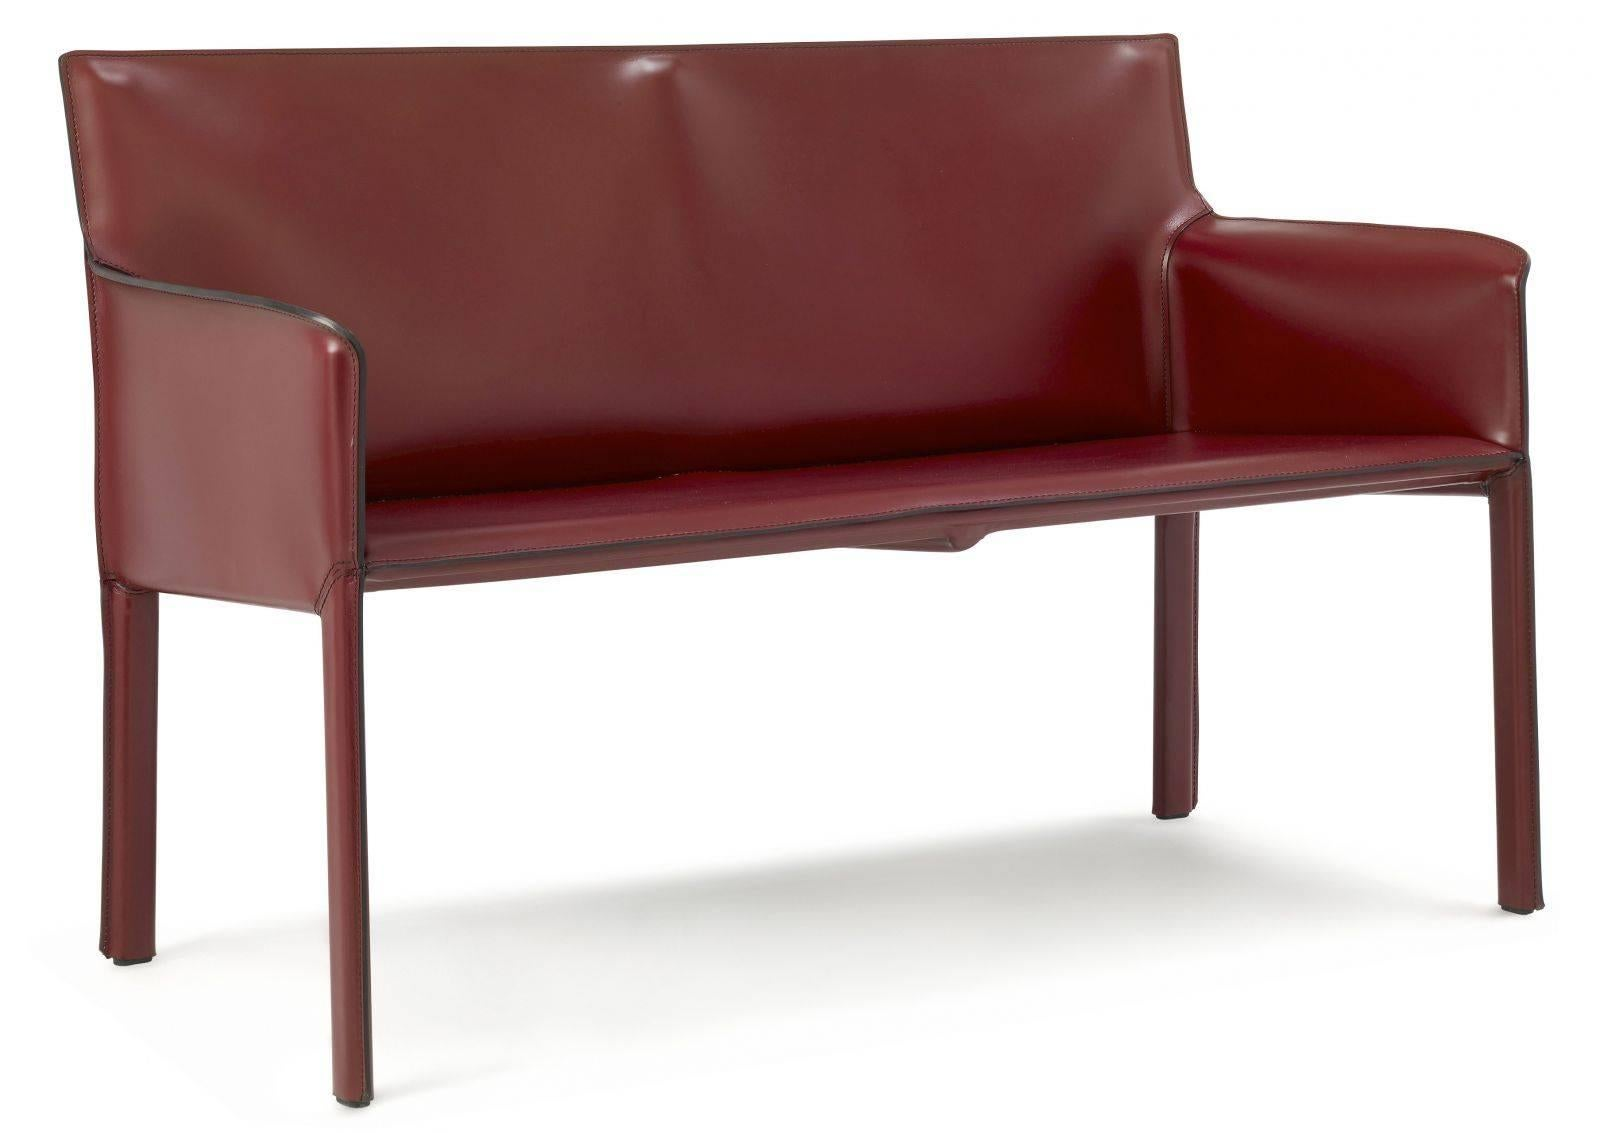 Italian Modern Office Leather Sofa Made in Italy 30 Leather Colors